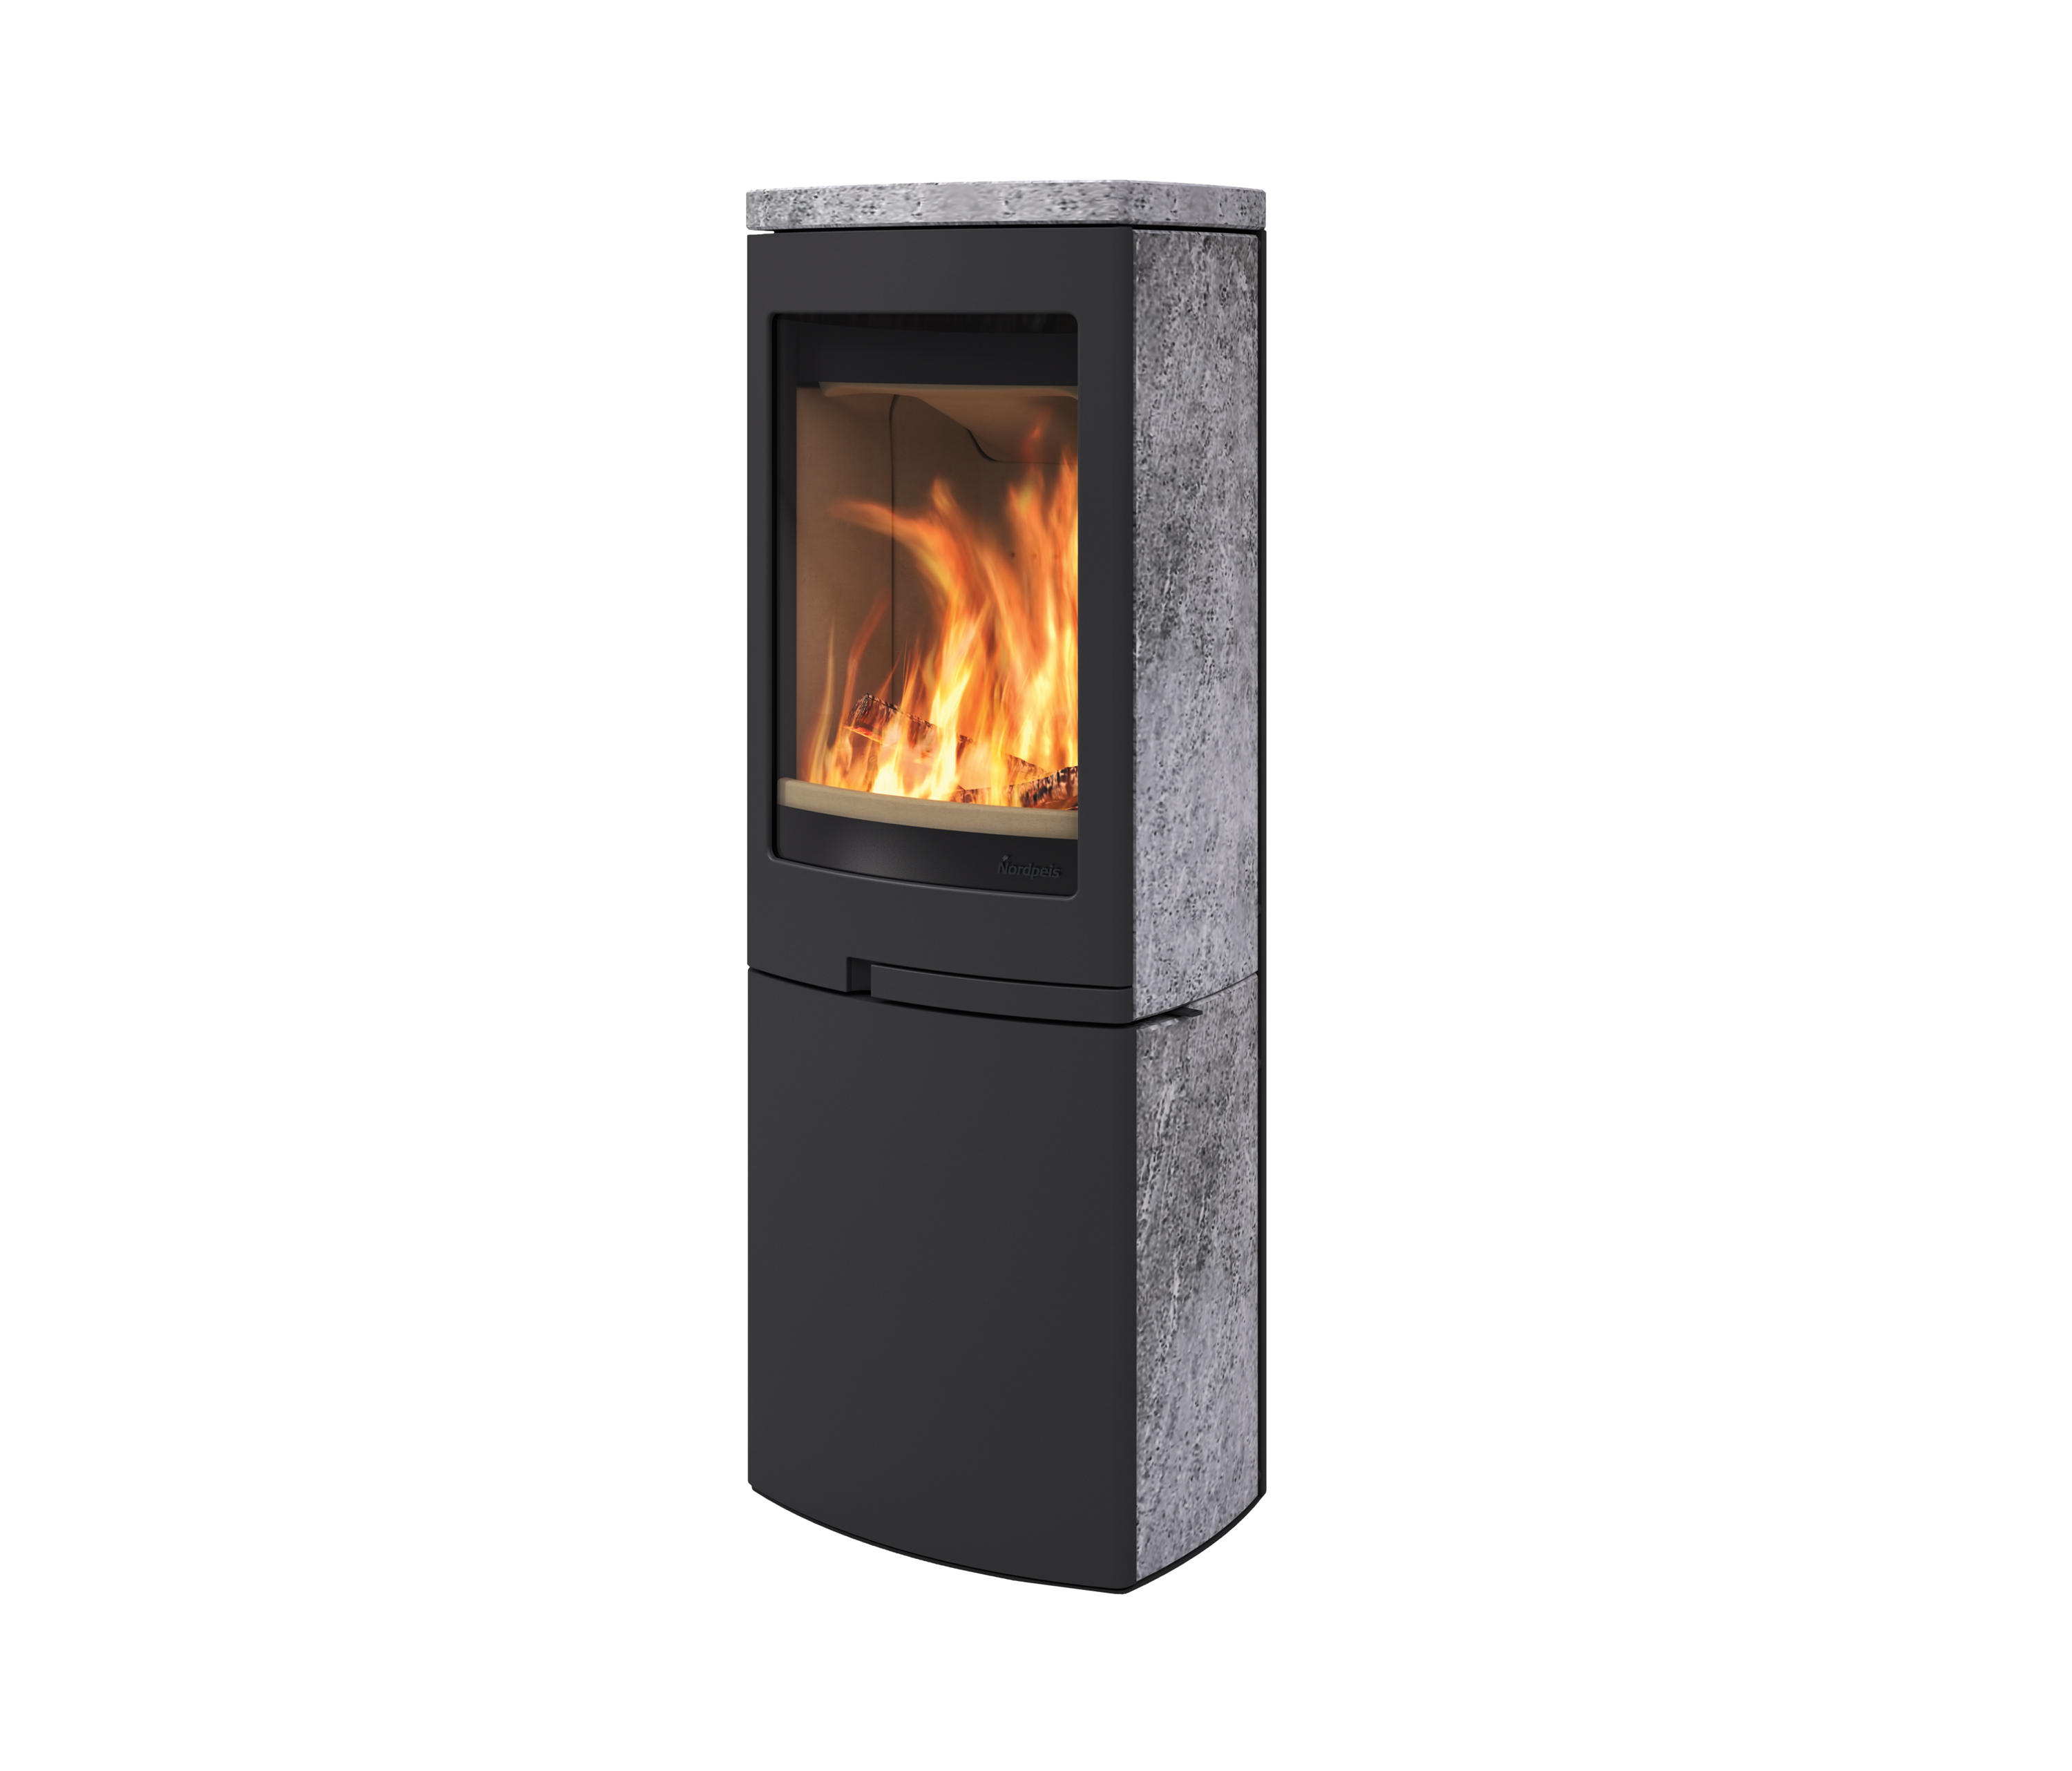 DUO 6 - Wood burning stoves from Nordpeis | Architonic